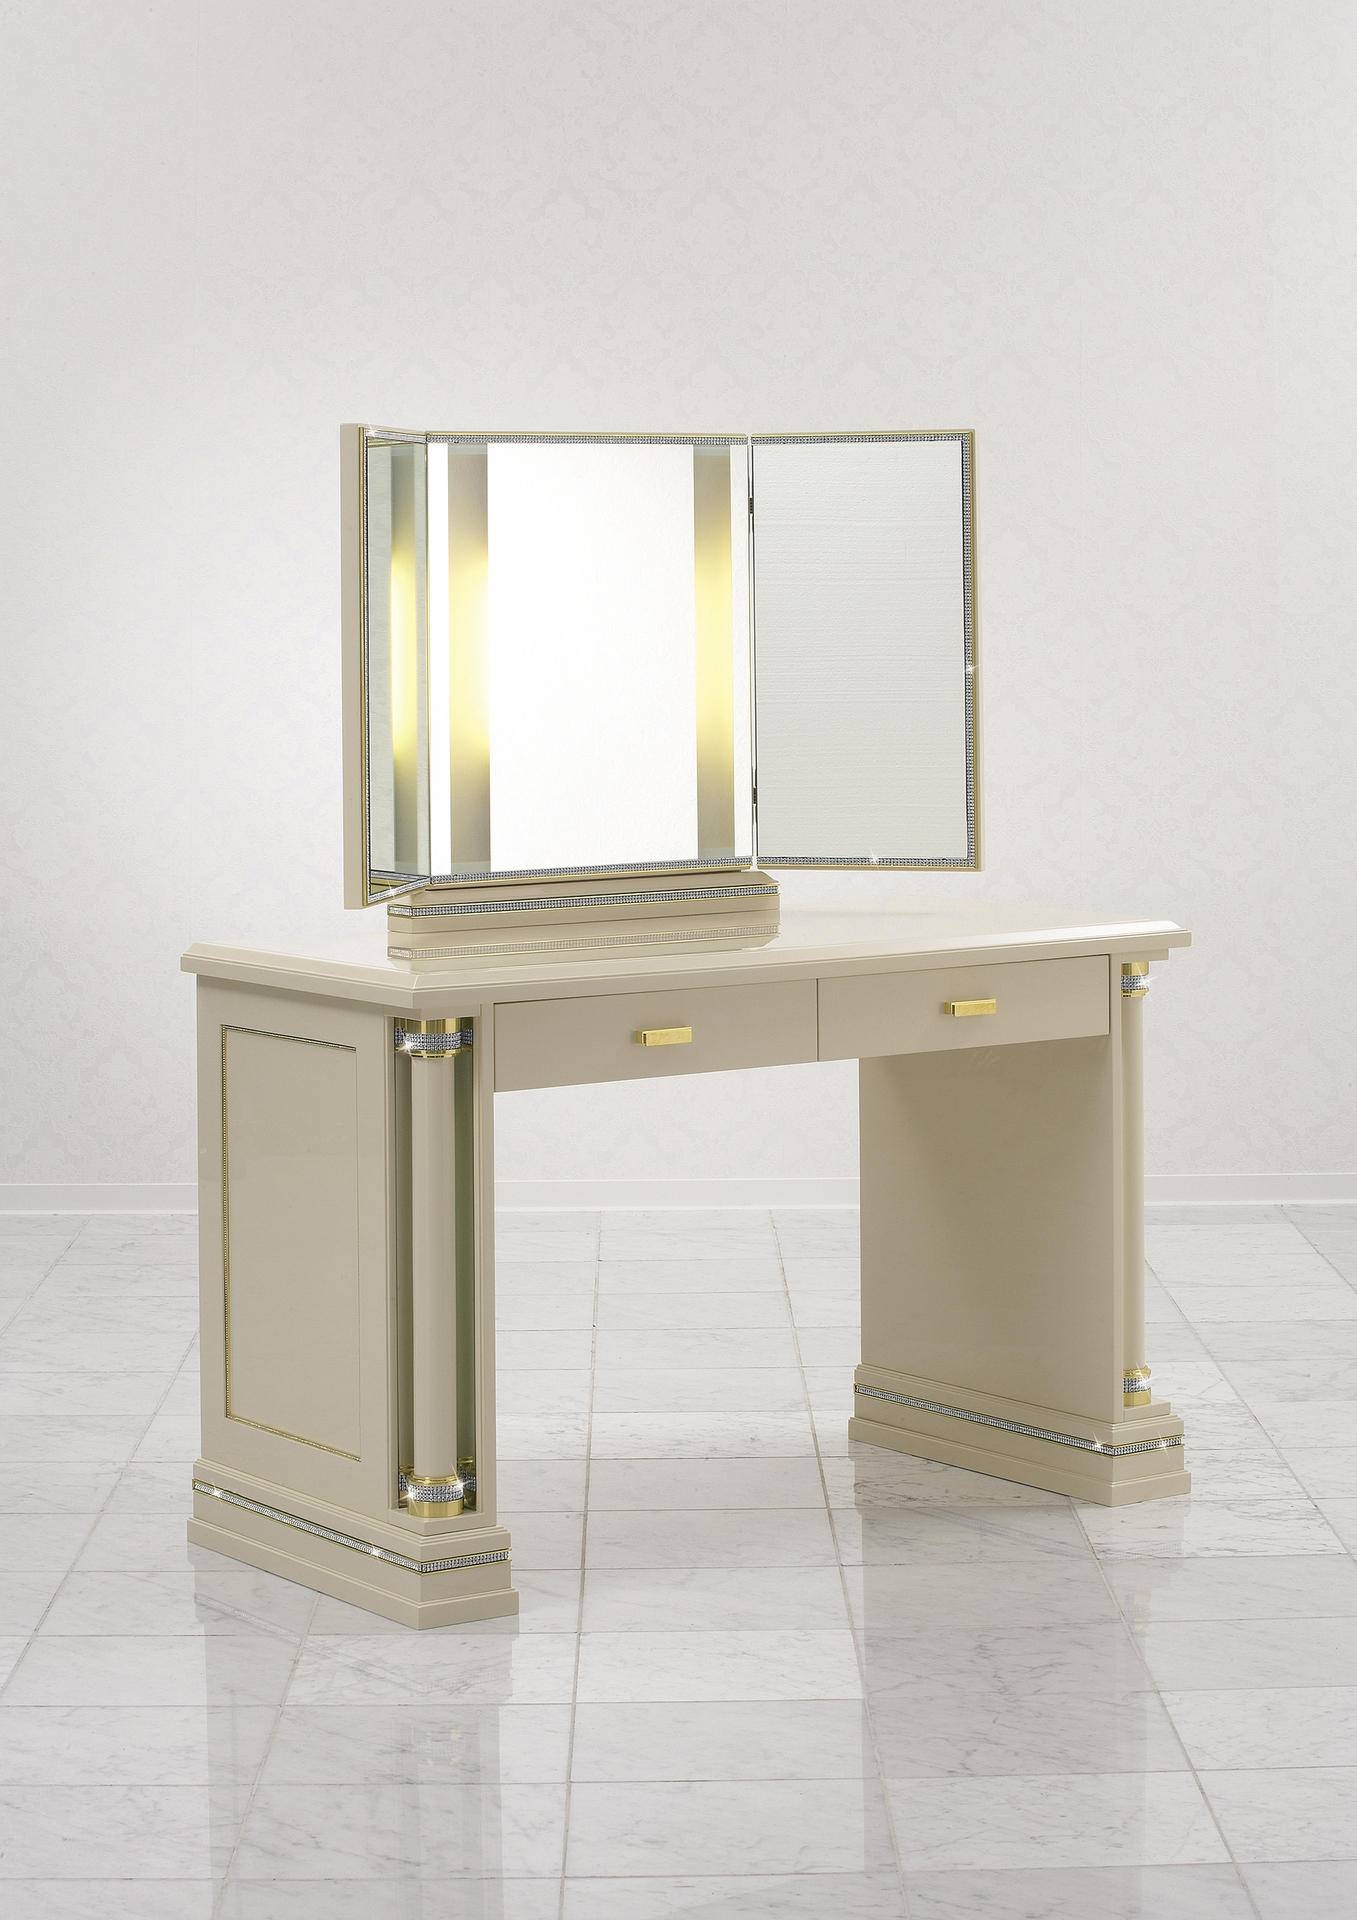 Furniture With Swarovski Crystals - Piato | Finkeldei inside Illuminated Dressing Table Mirrors (Image 20 of 25)